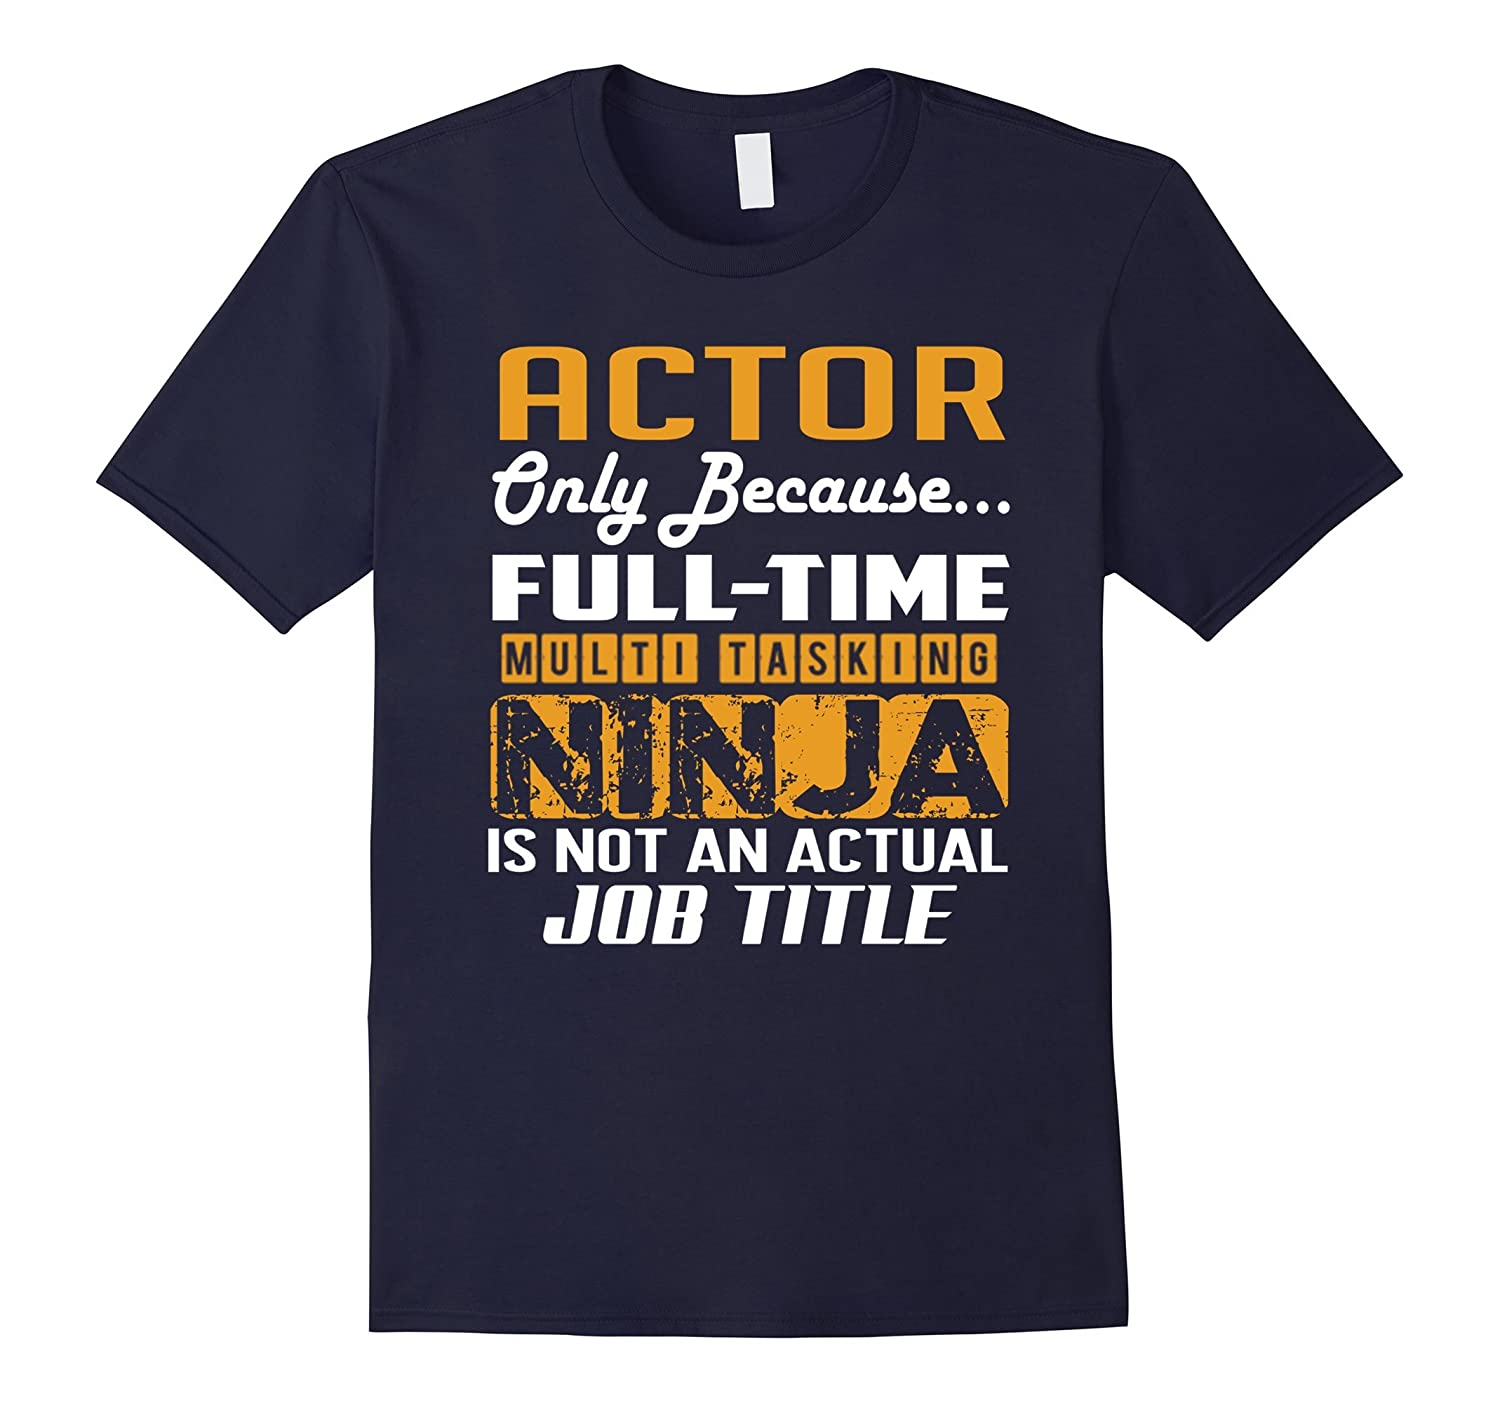 ACTOR Is Not An Actual Job Title TShirt-TJ